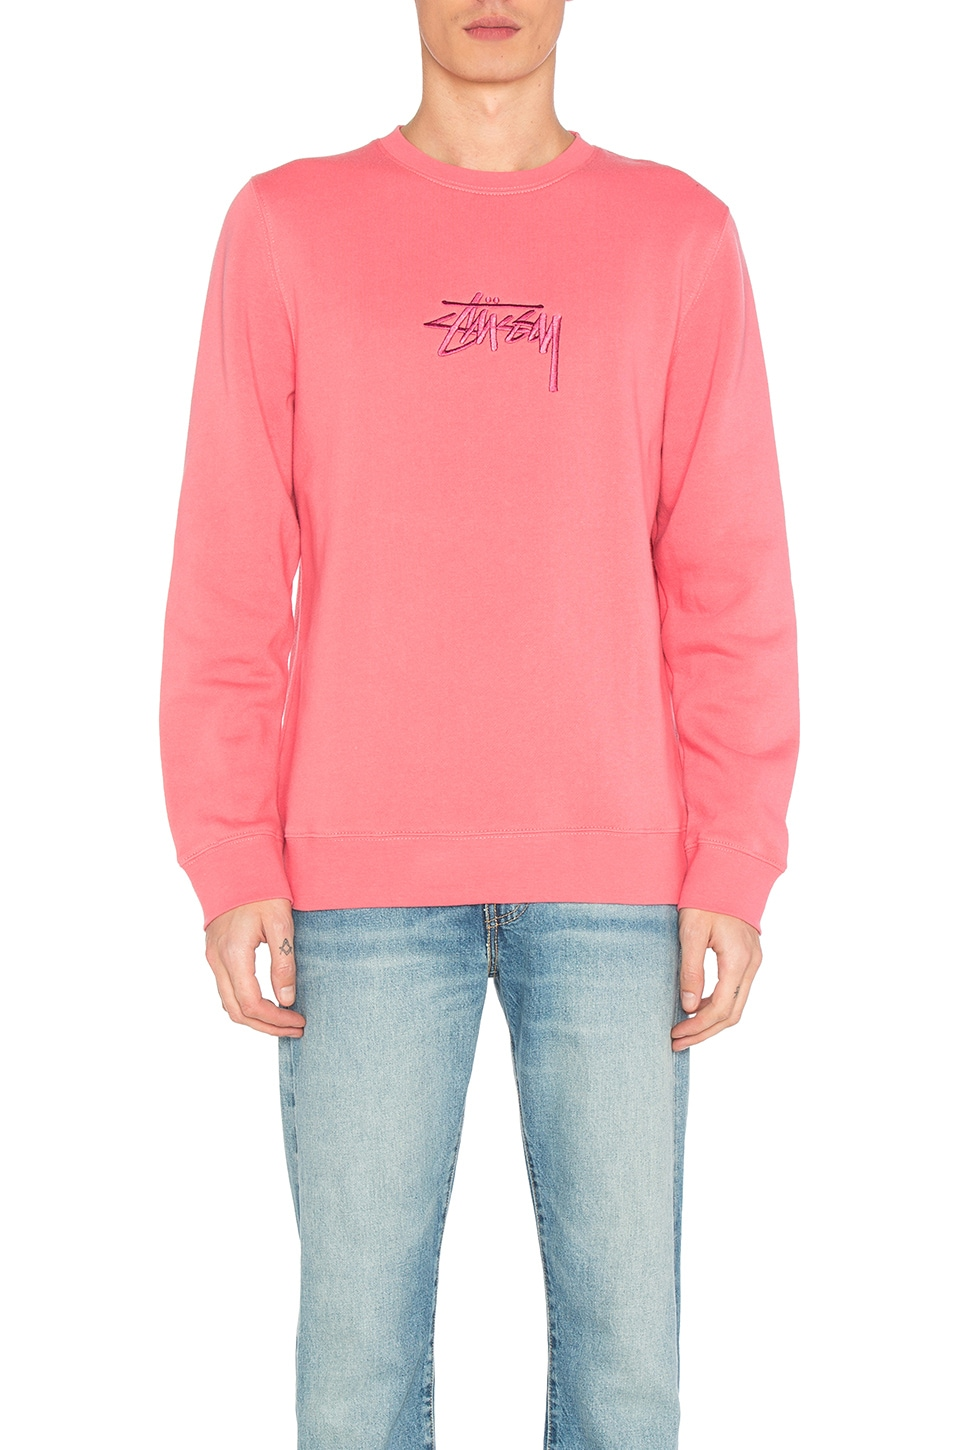 New Stock Applique Crew by Stussy